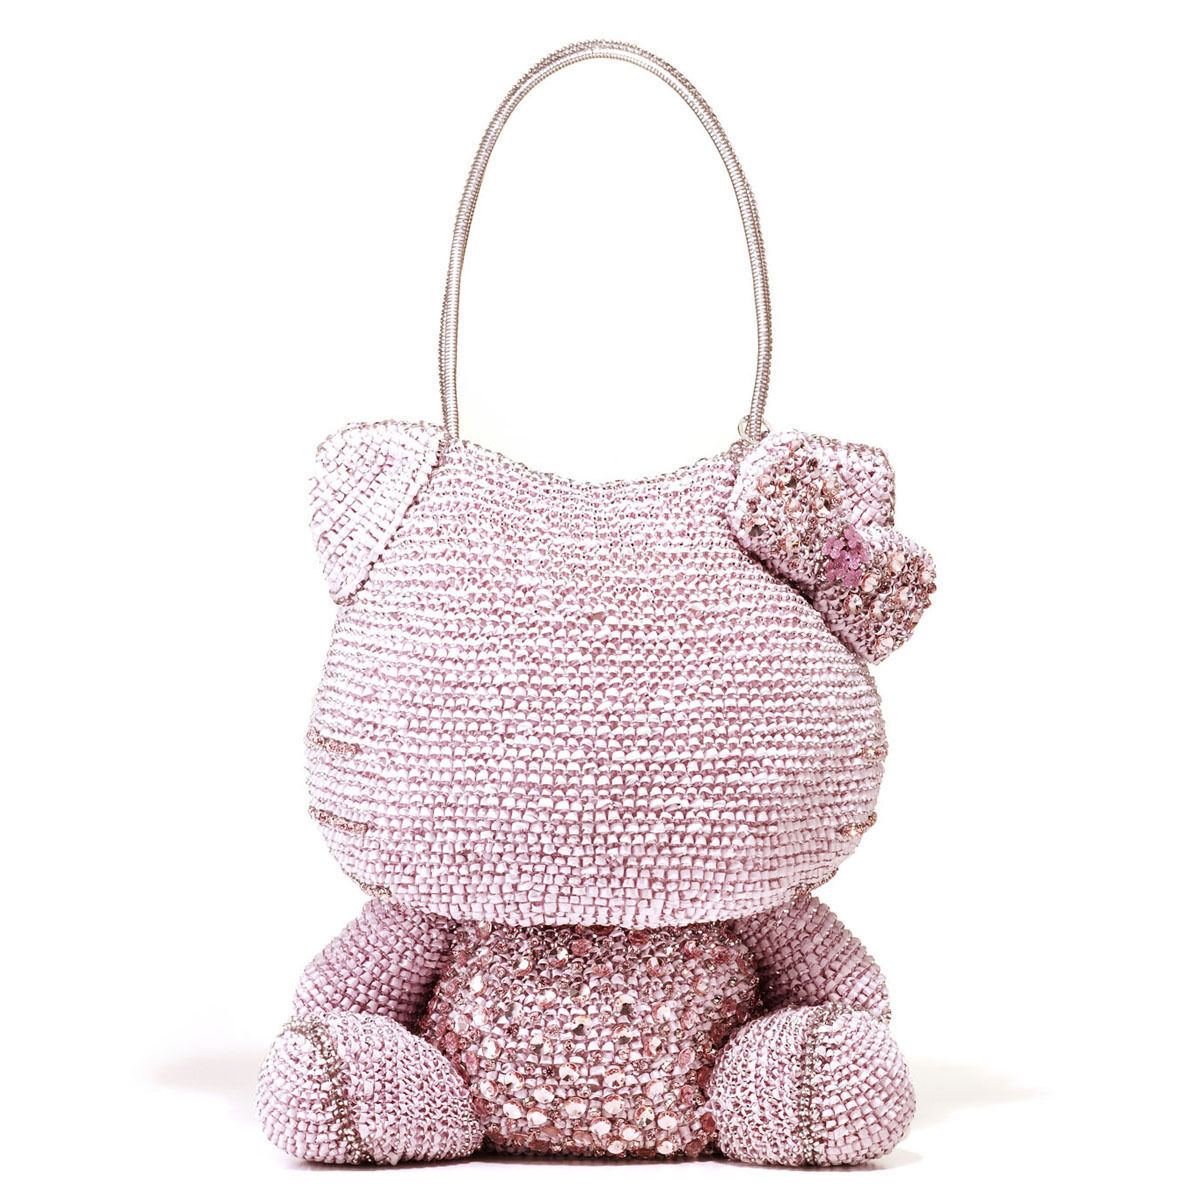 70ac29b0b Hello Kitty x ANTEPRIMA Shoulder Bag Silver pink Wire bag from JAPAN NEW  F/S - $3,739.23